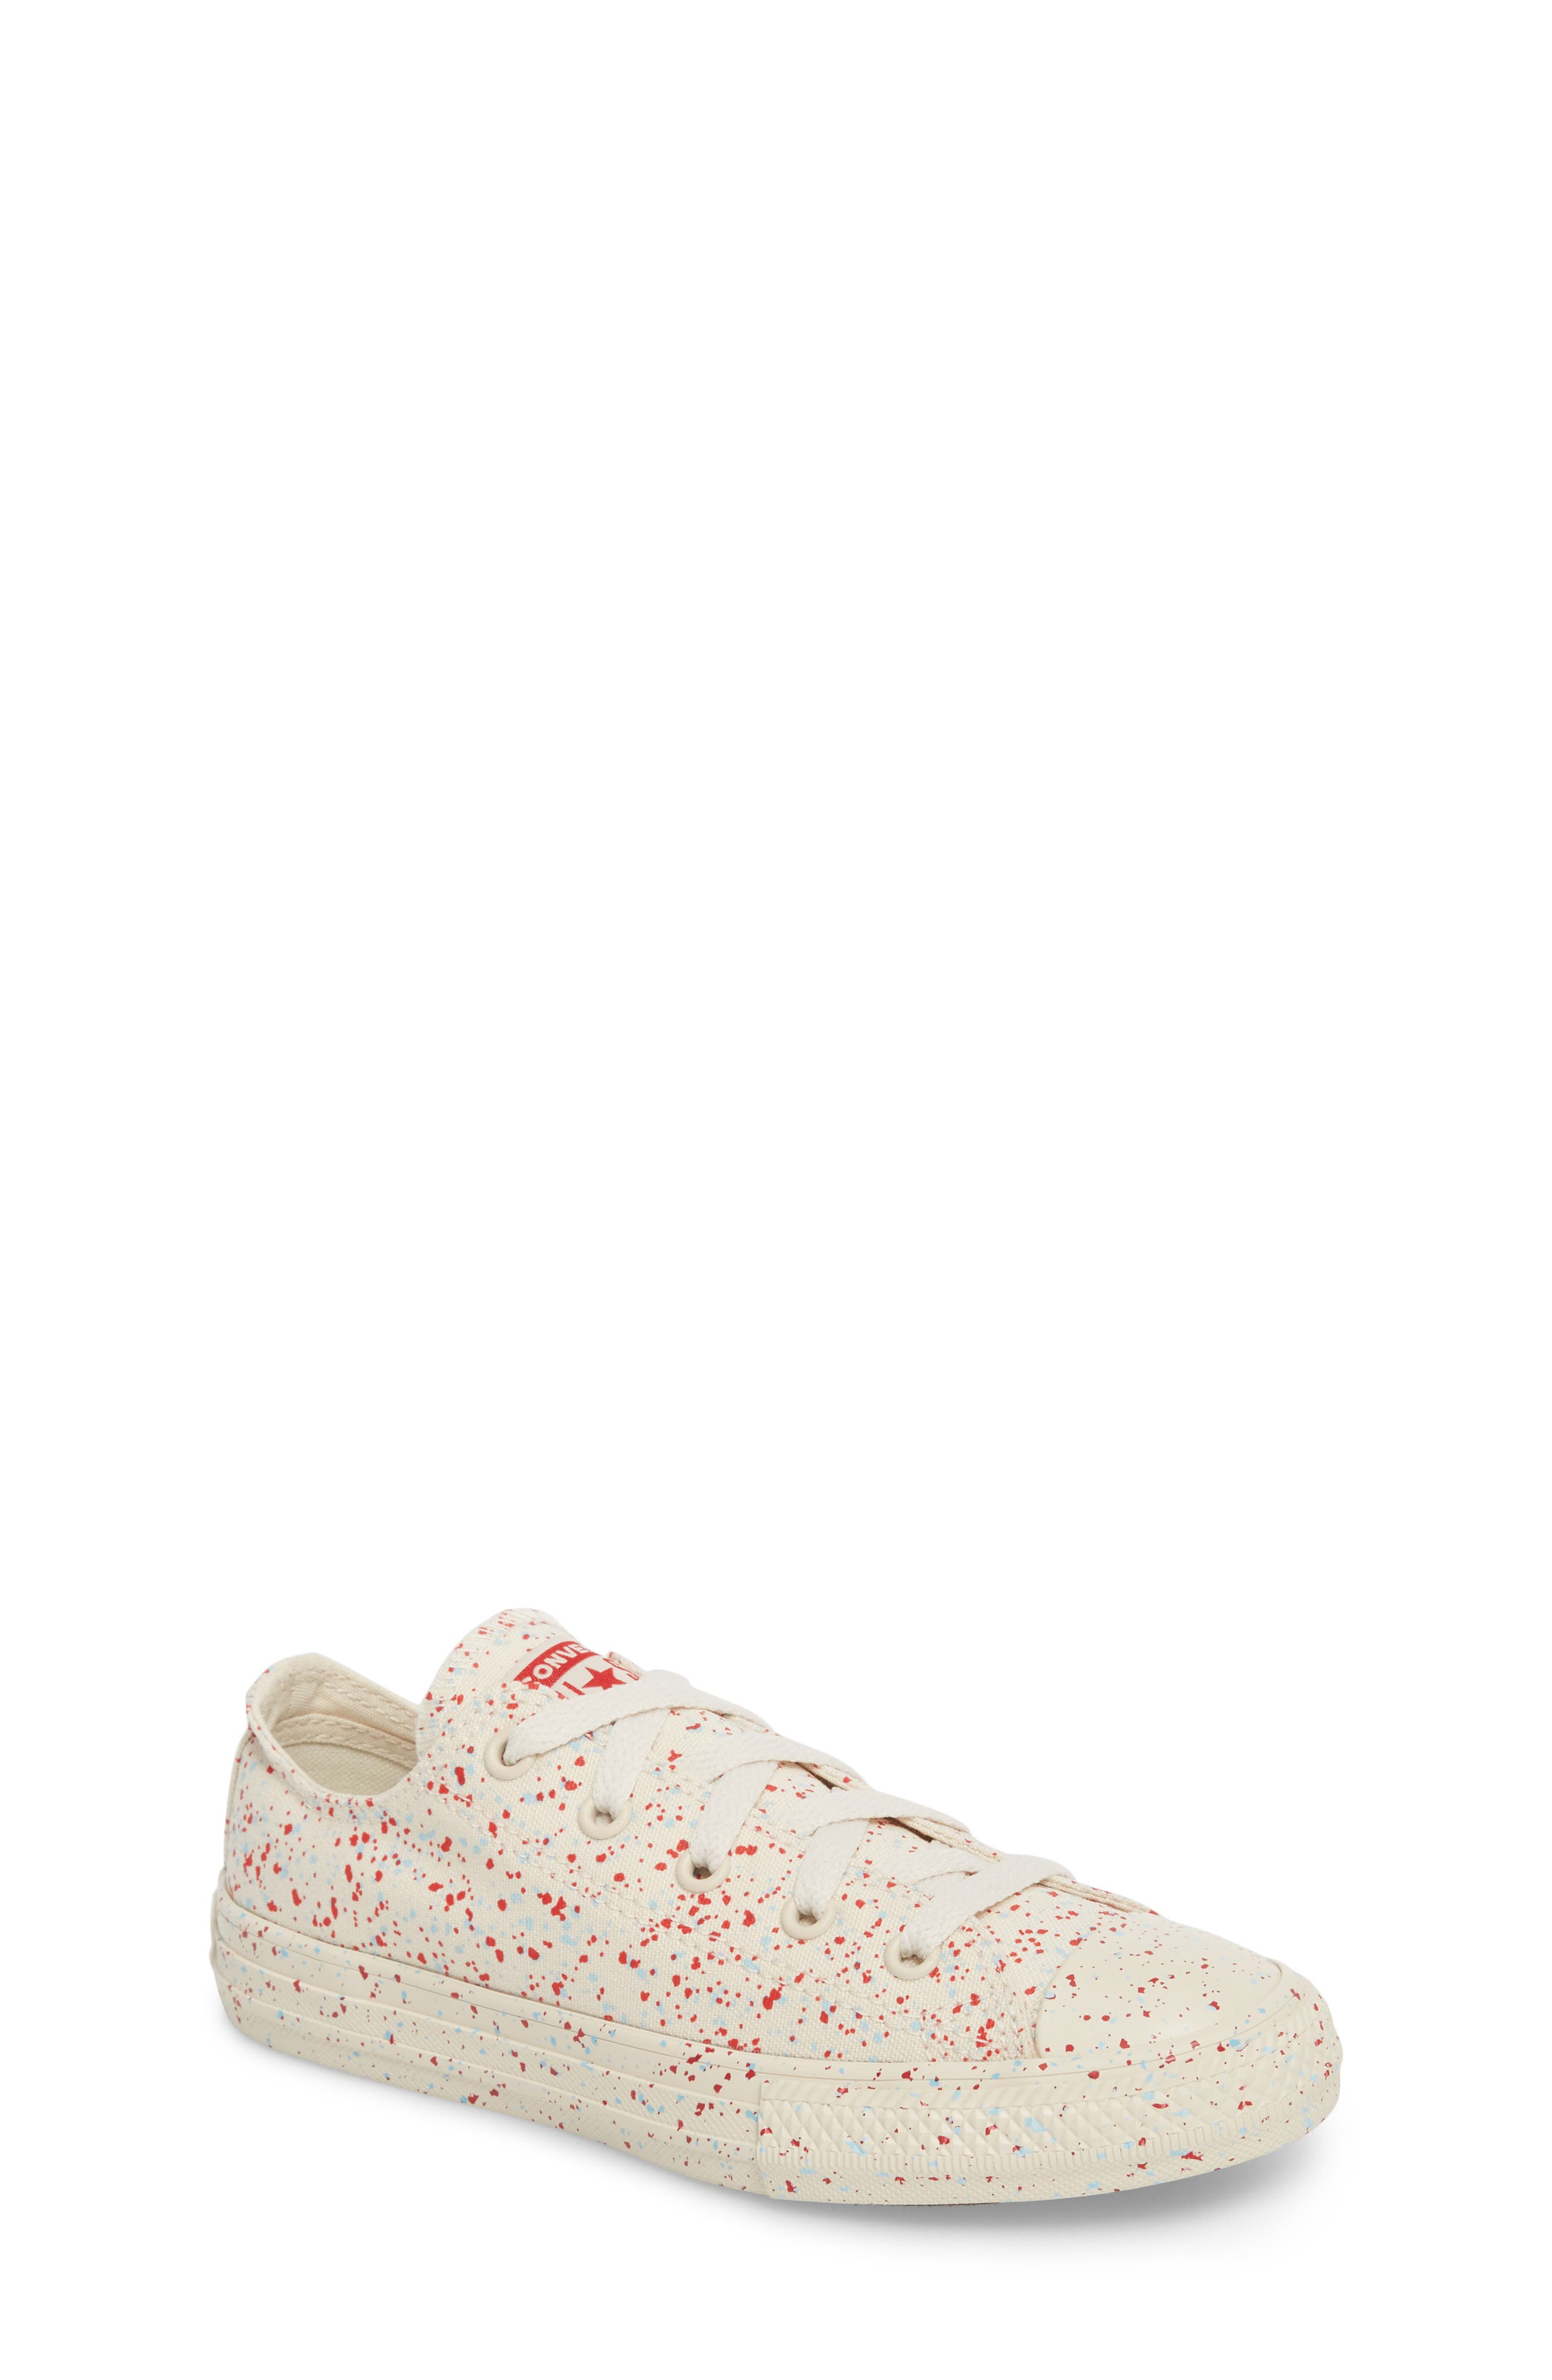 Converse Chuck Taylor® All Star® Americana Speckle Oxford Sneaker (Toddler, Little Kid & Big Kid)